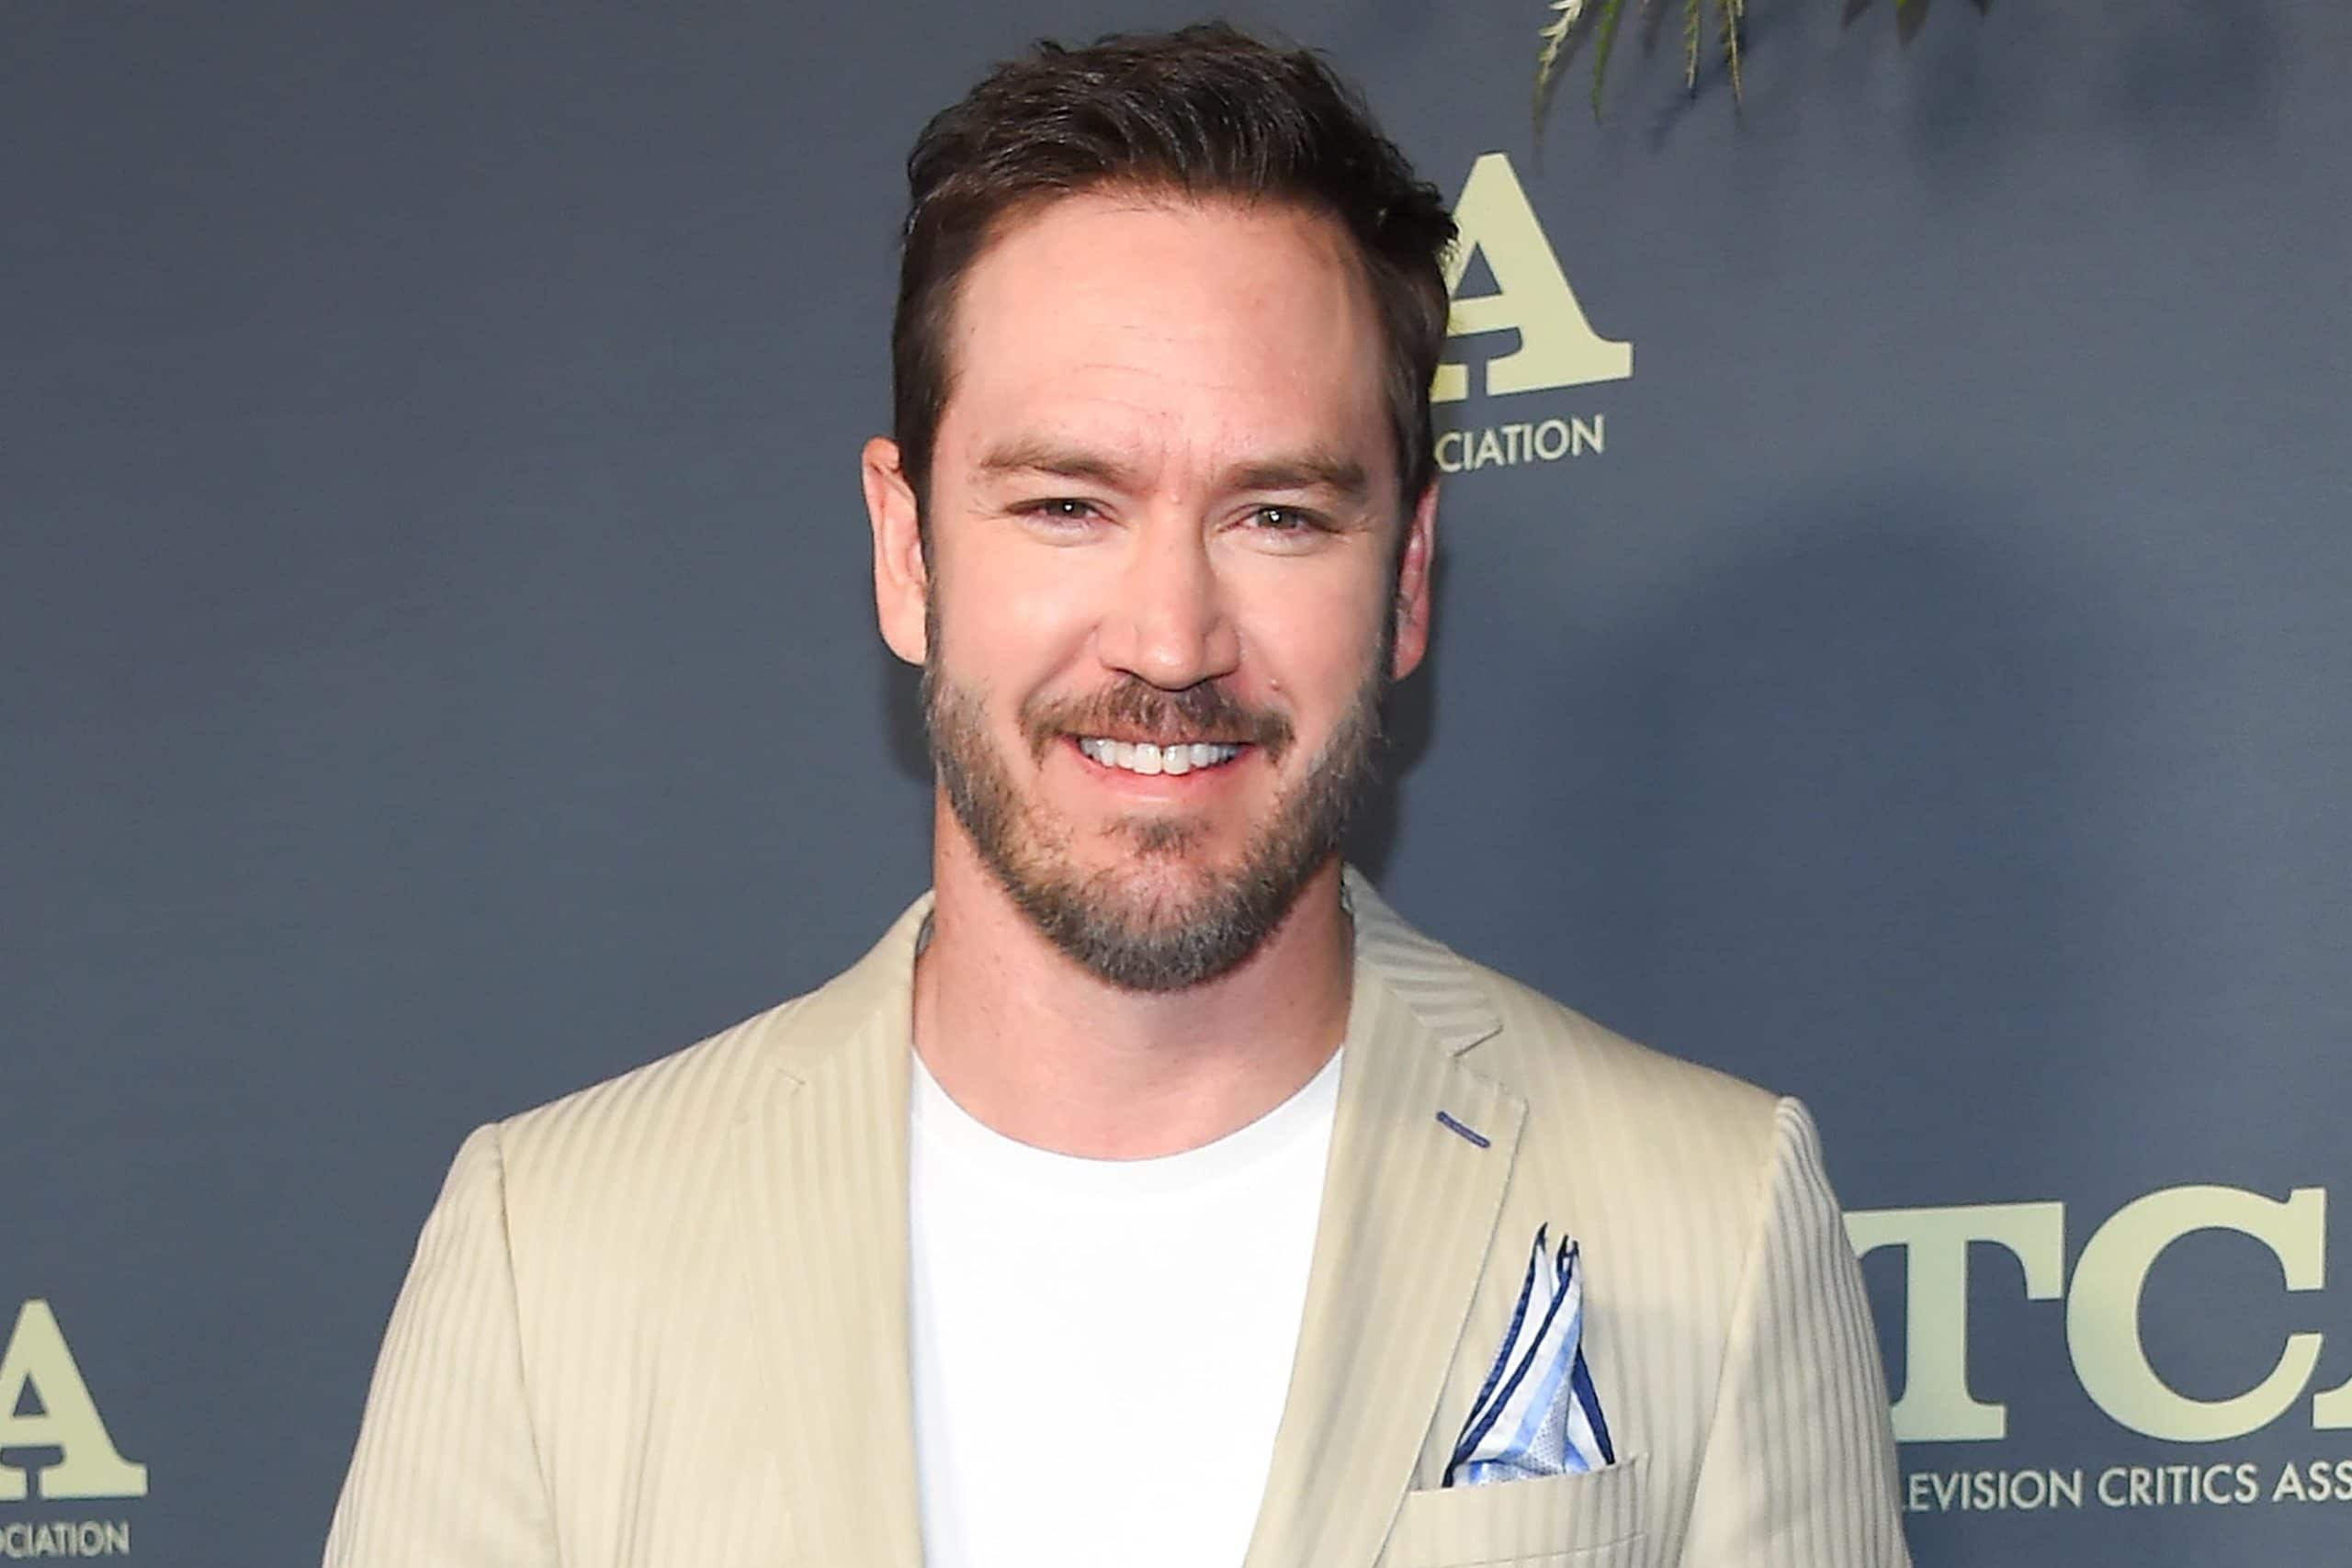 Mark-Paul Gosselaar American Actor